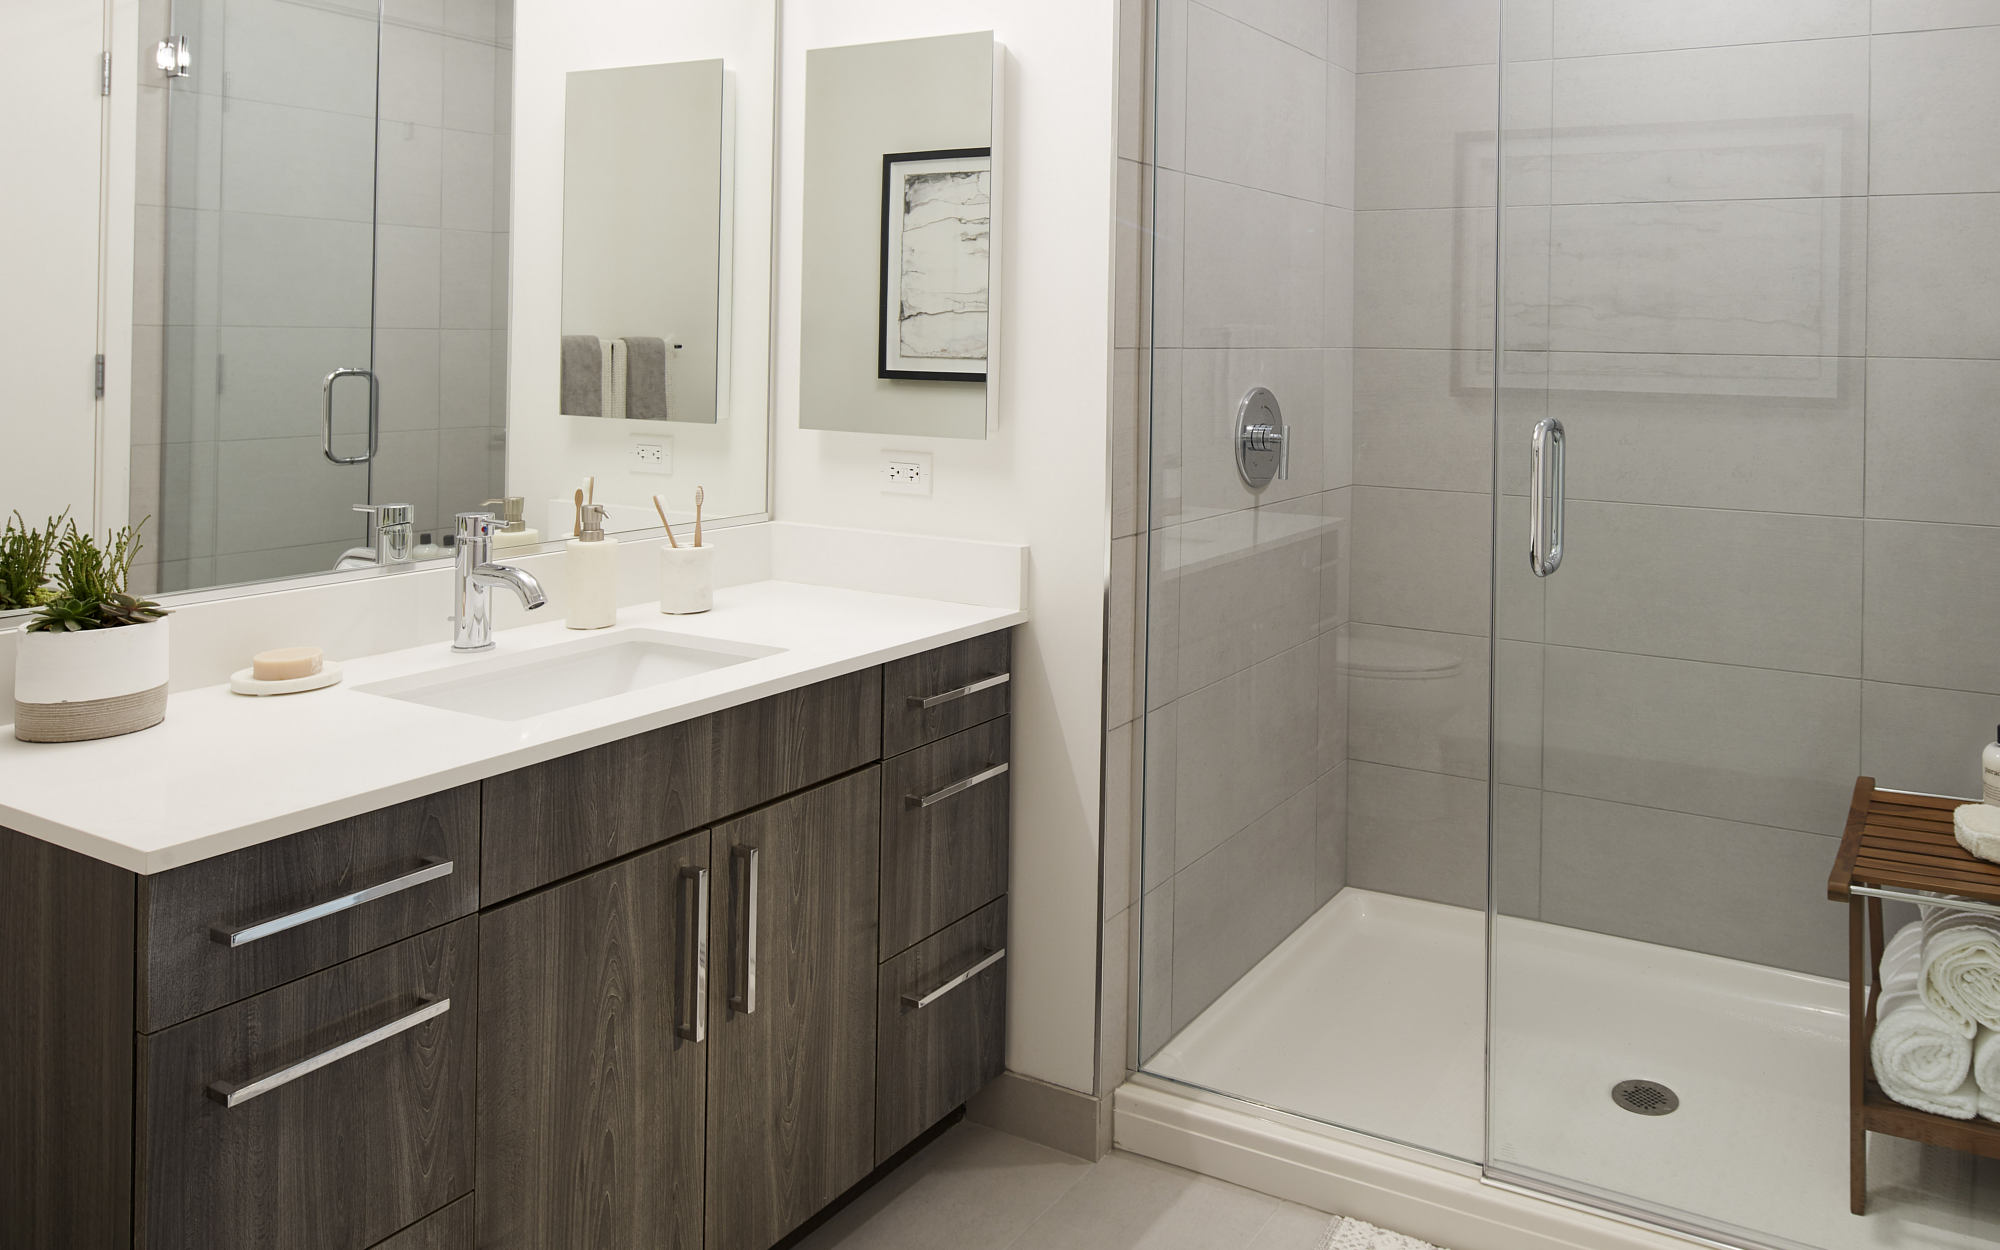 Essex model bathroom with standing steam shower